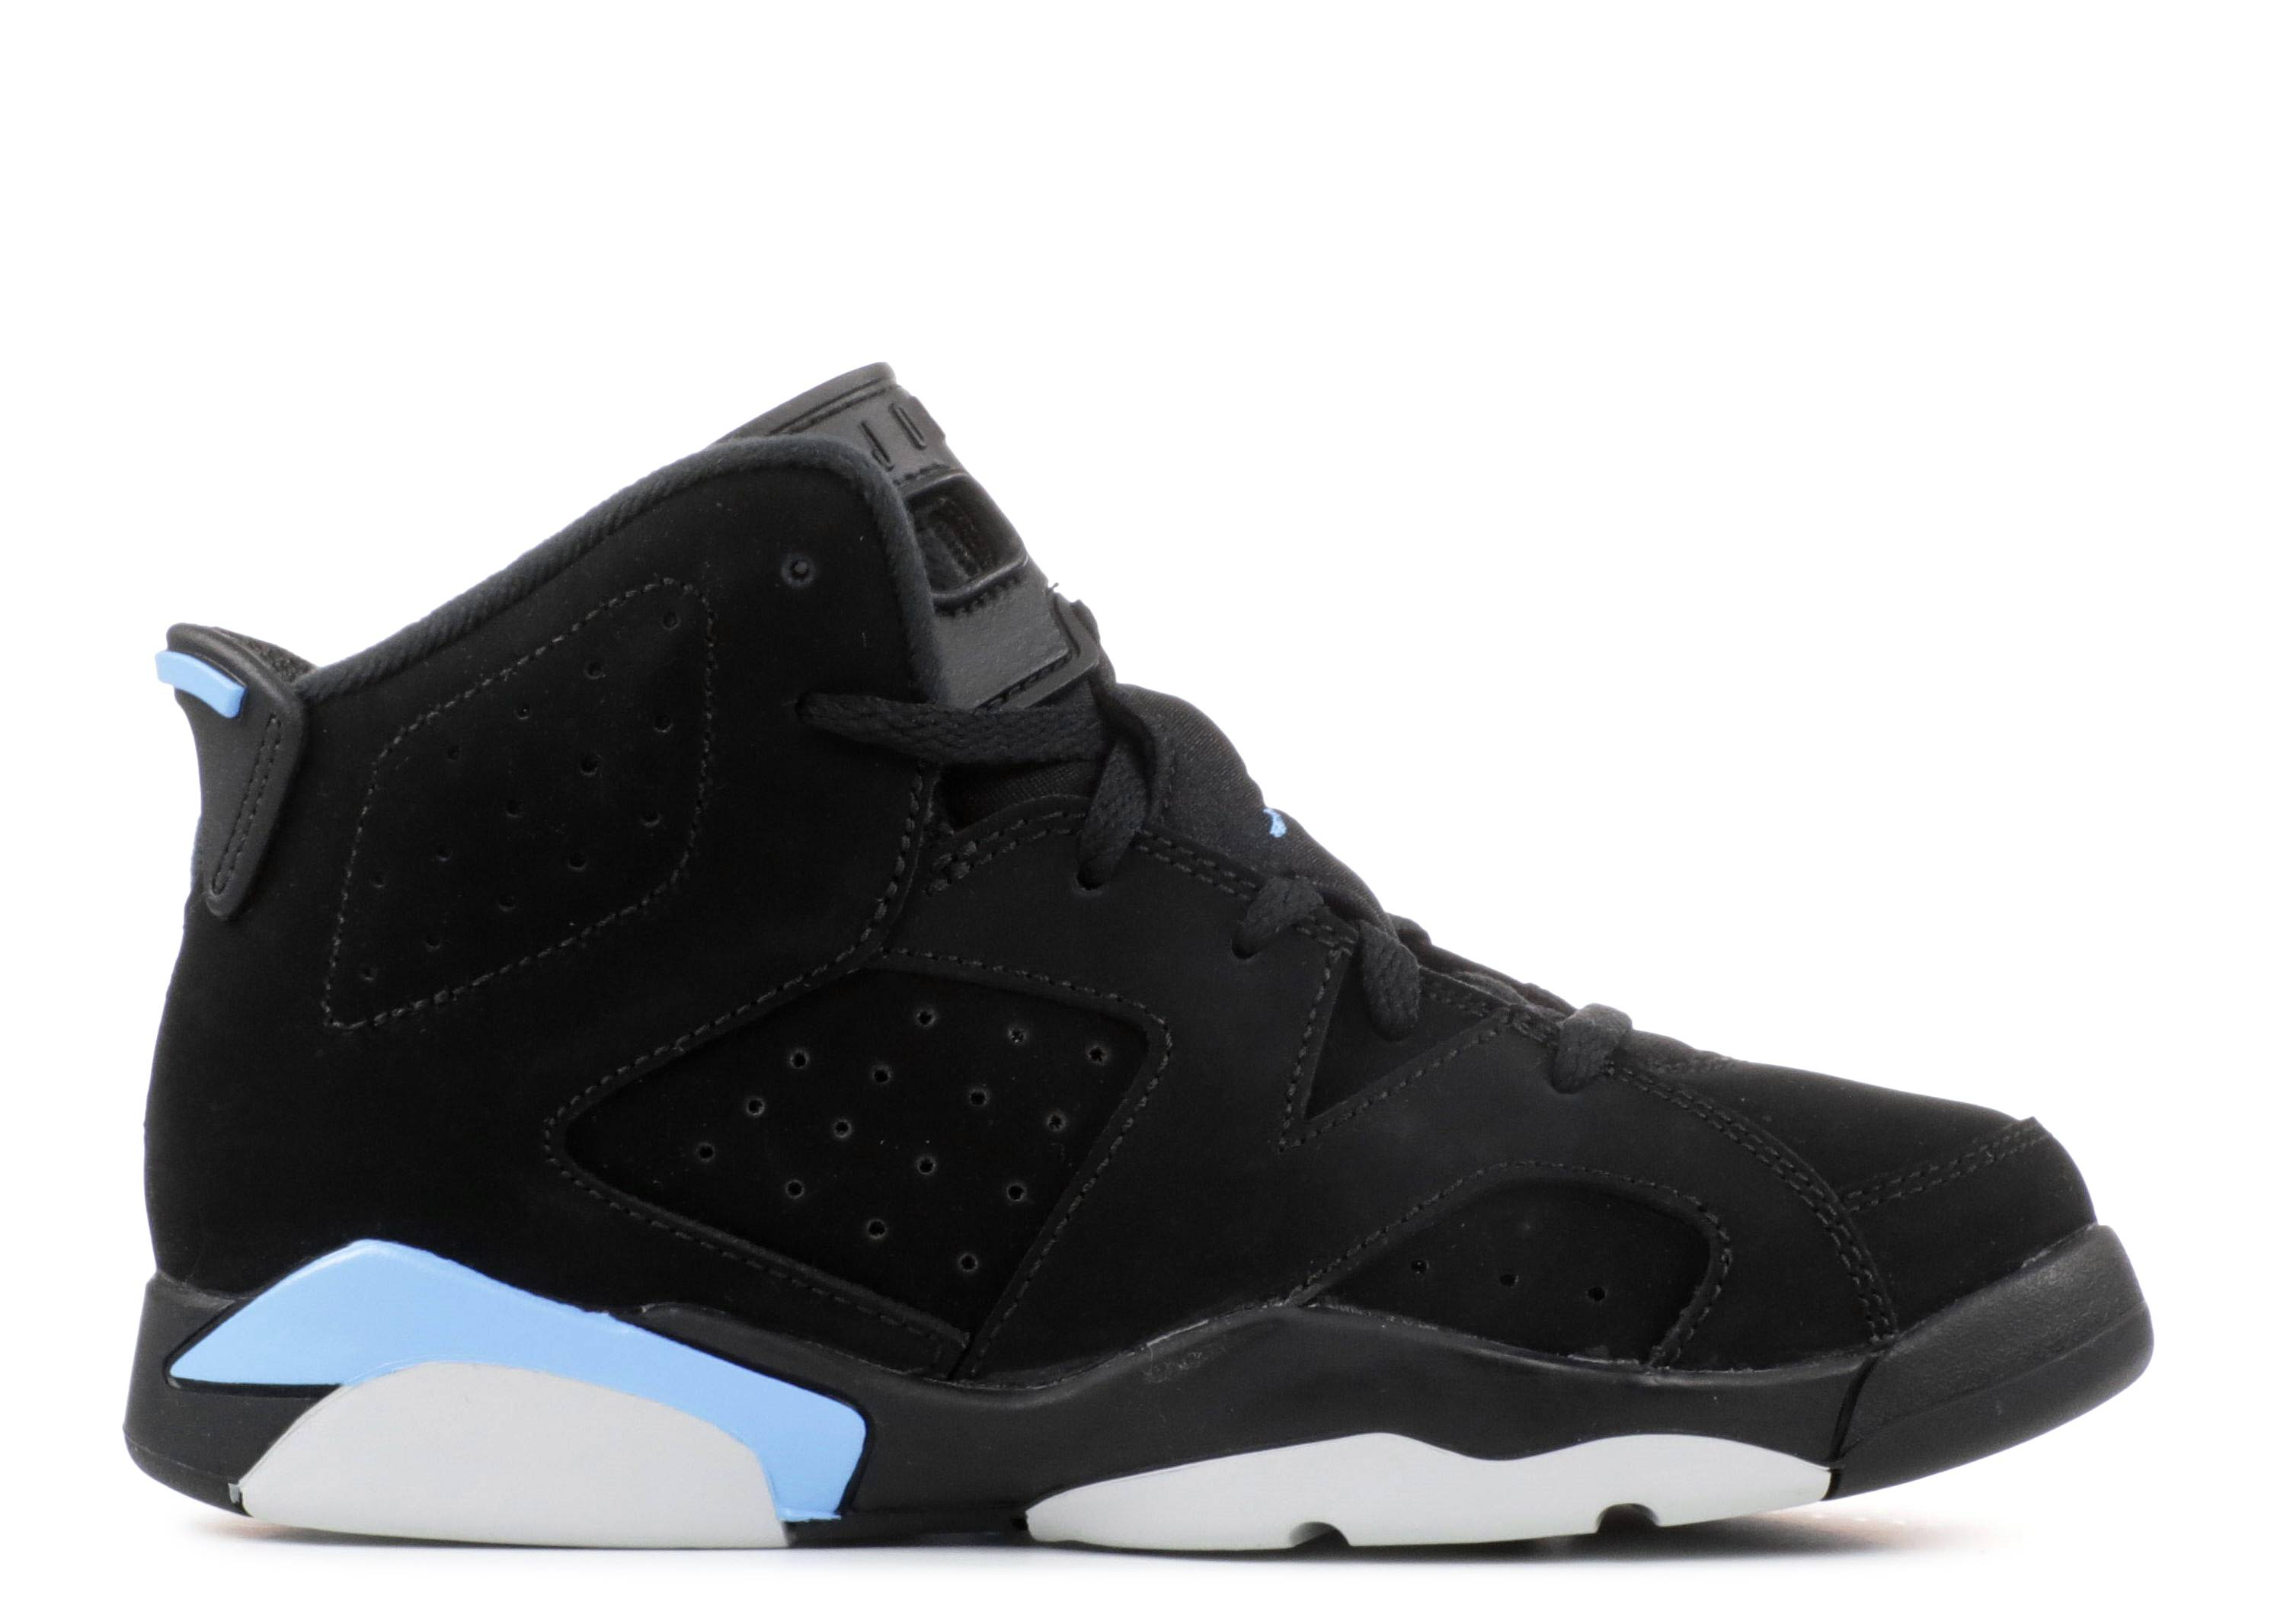 2c8d201c51f7 Jordan 6 Retro Bp - Air Jordan - 384666 006 - black university blue ...